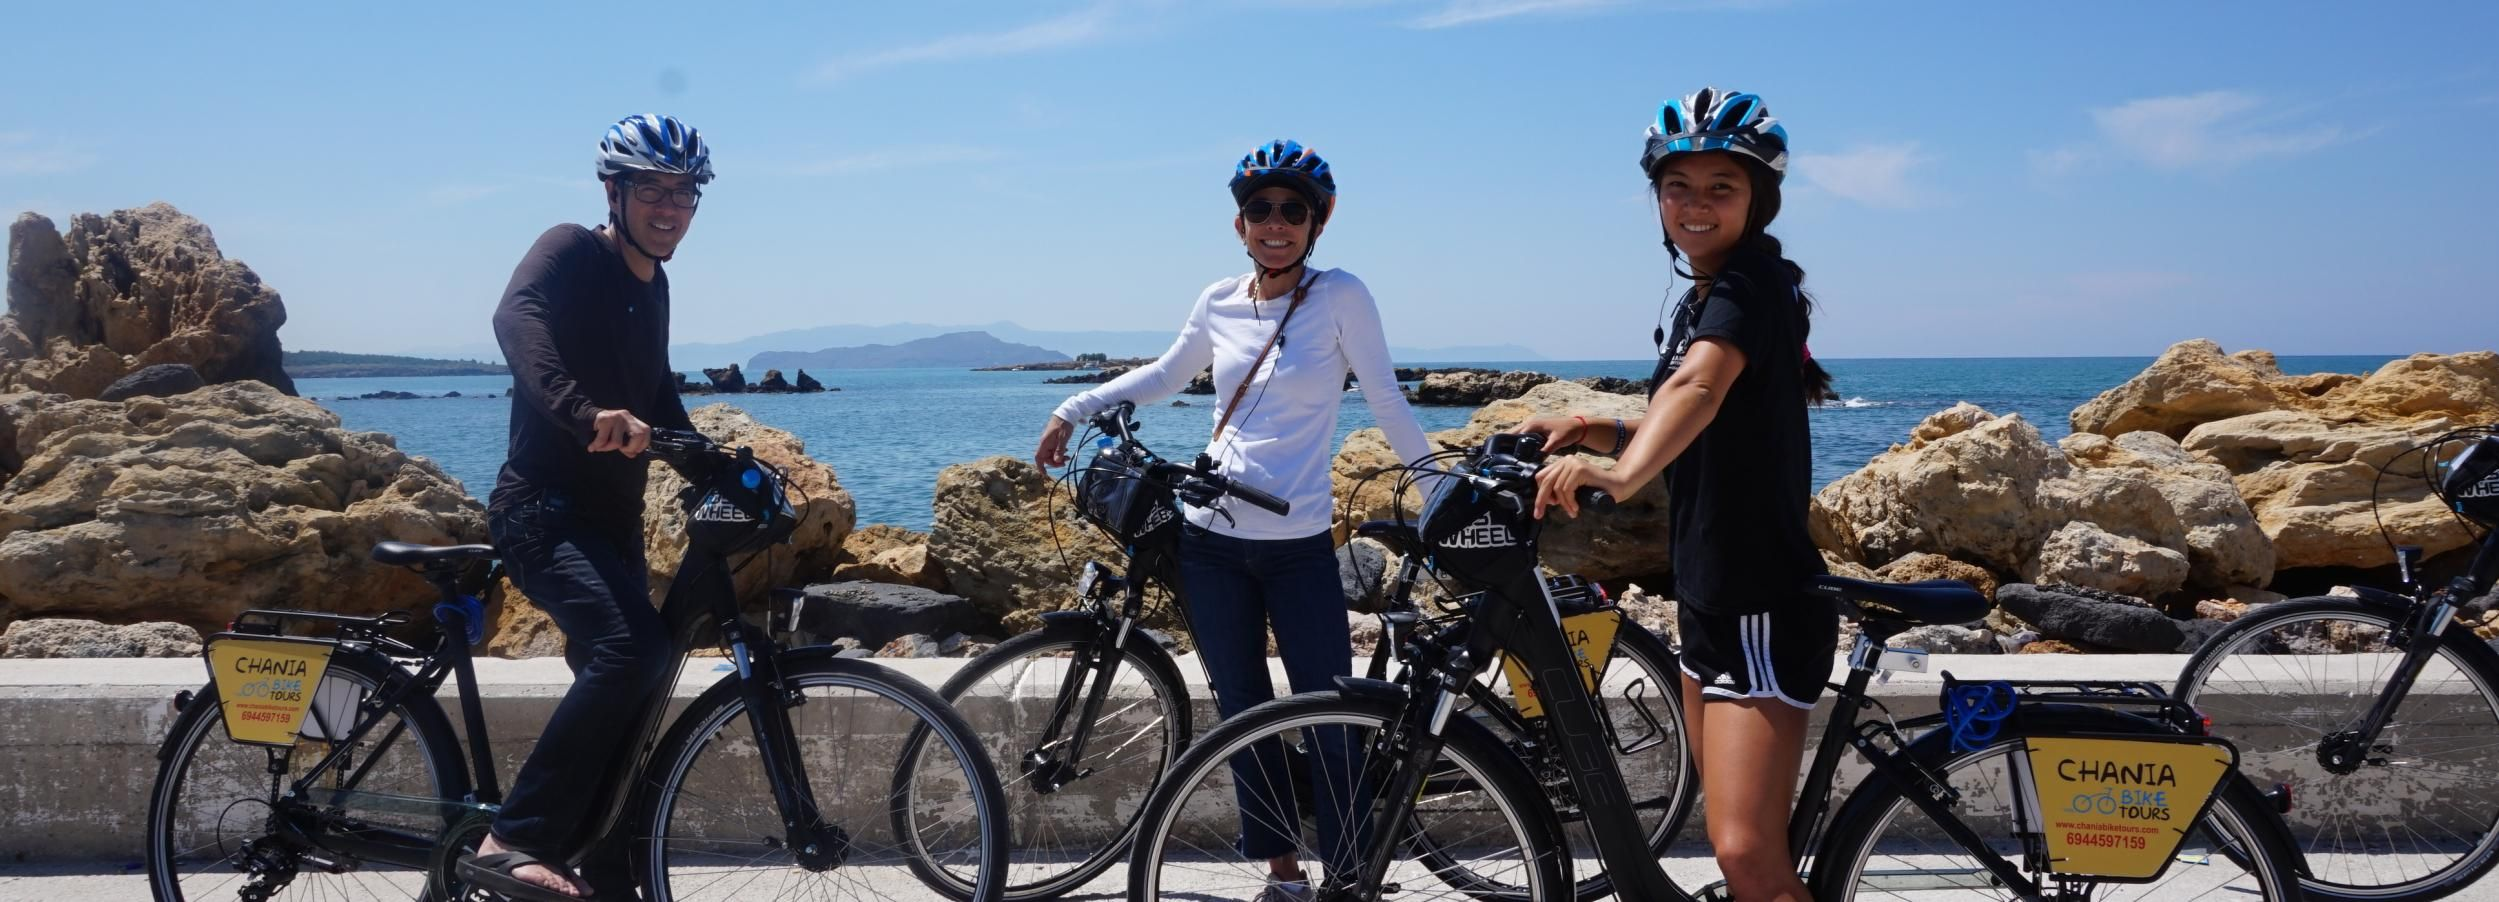 Chania: Guided Bike Tour